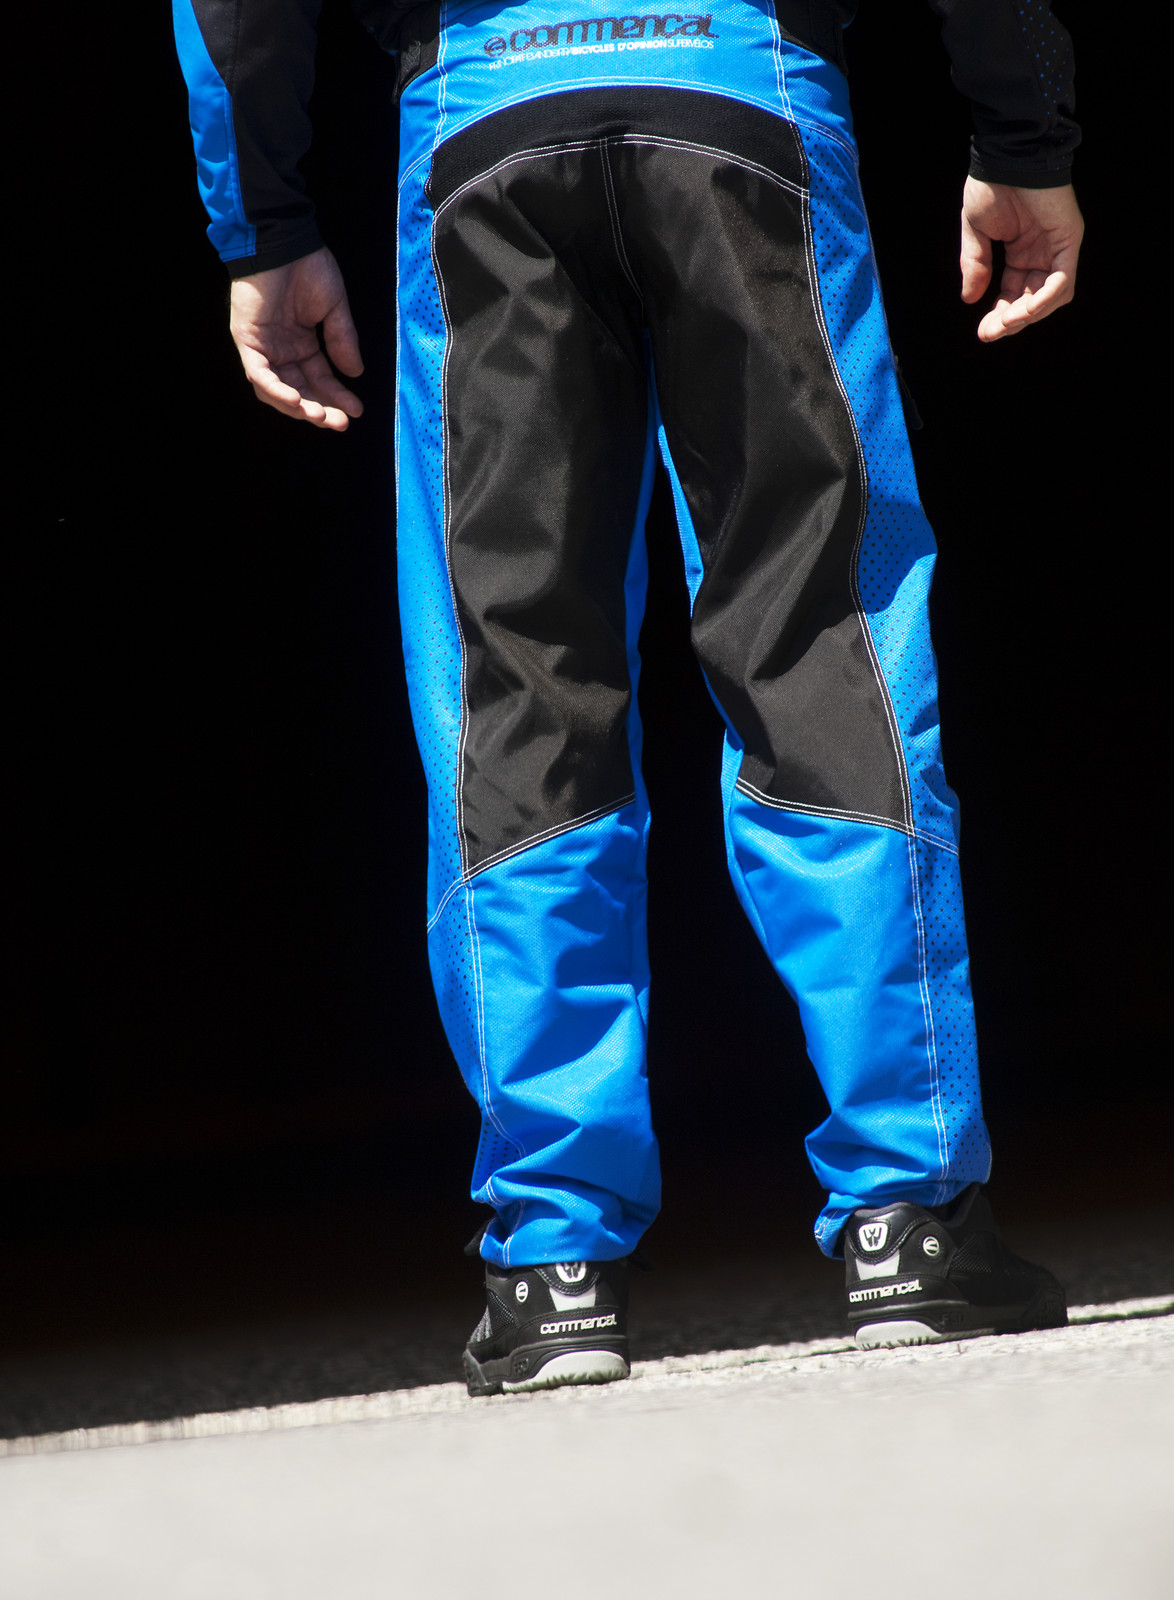 Commencal 2013 FR/DH Pants  pant_DH_blue_2